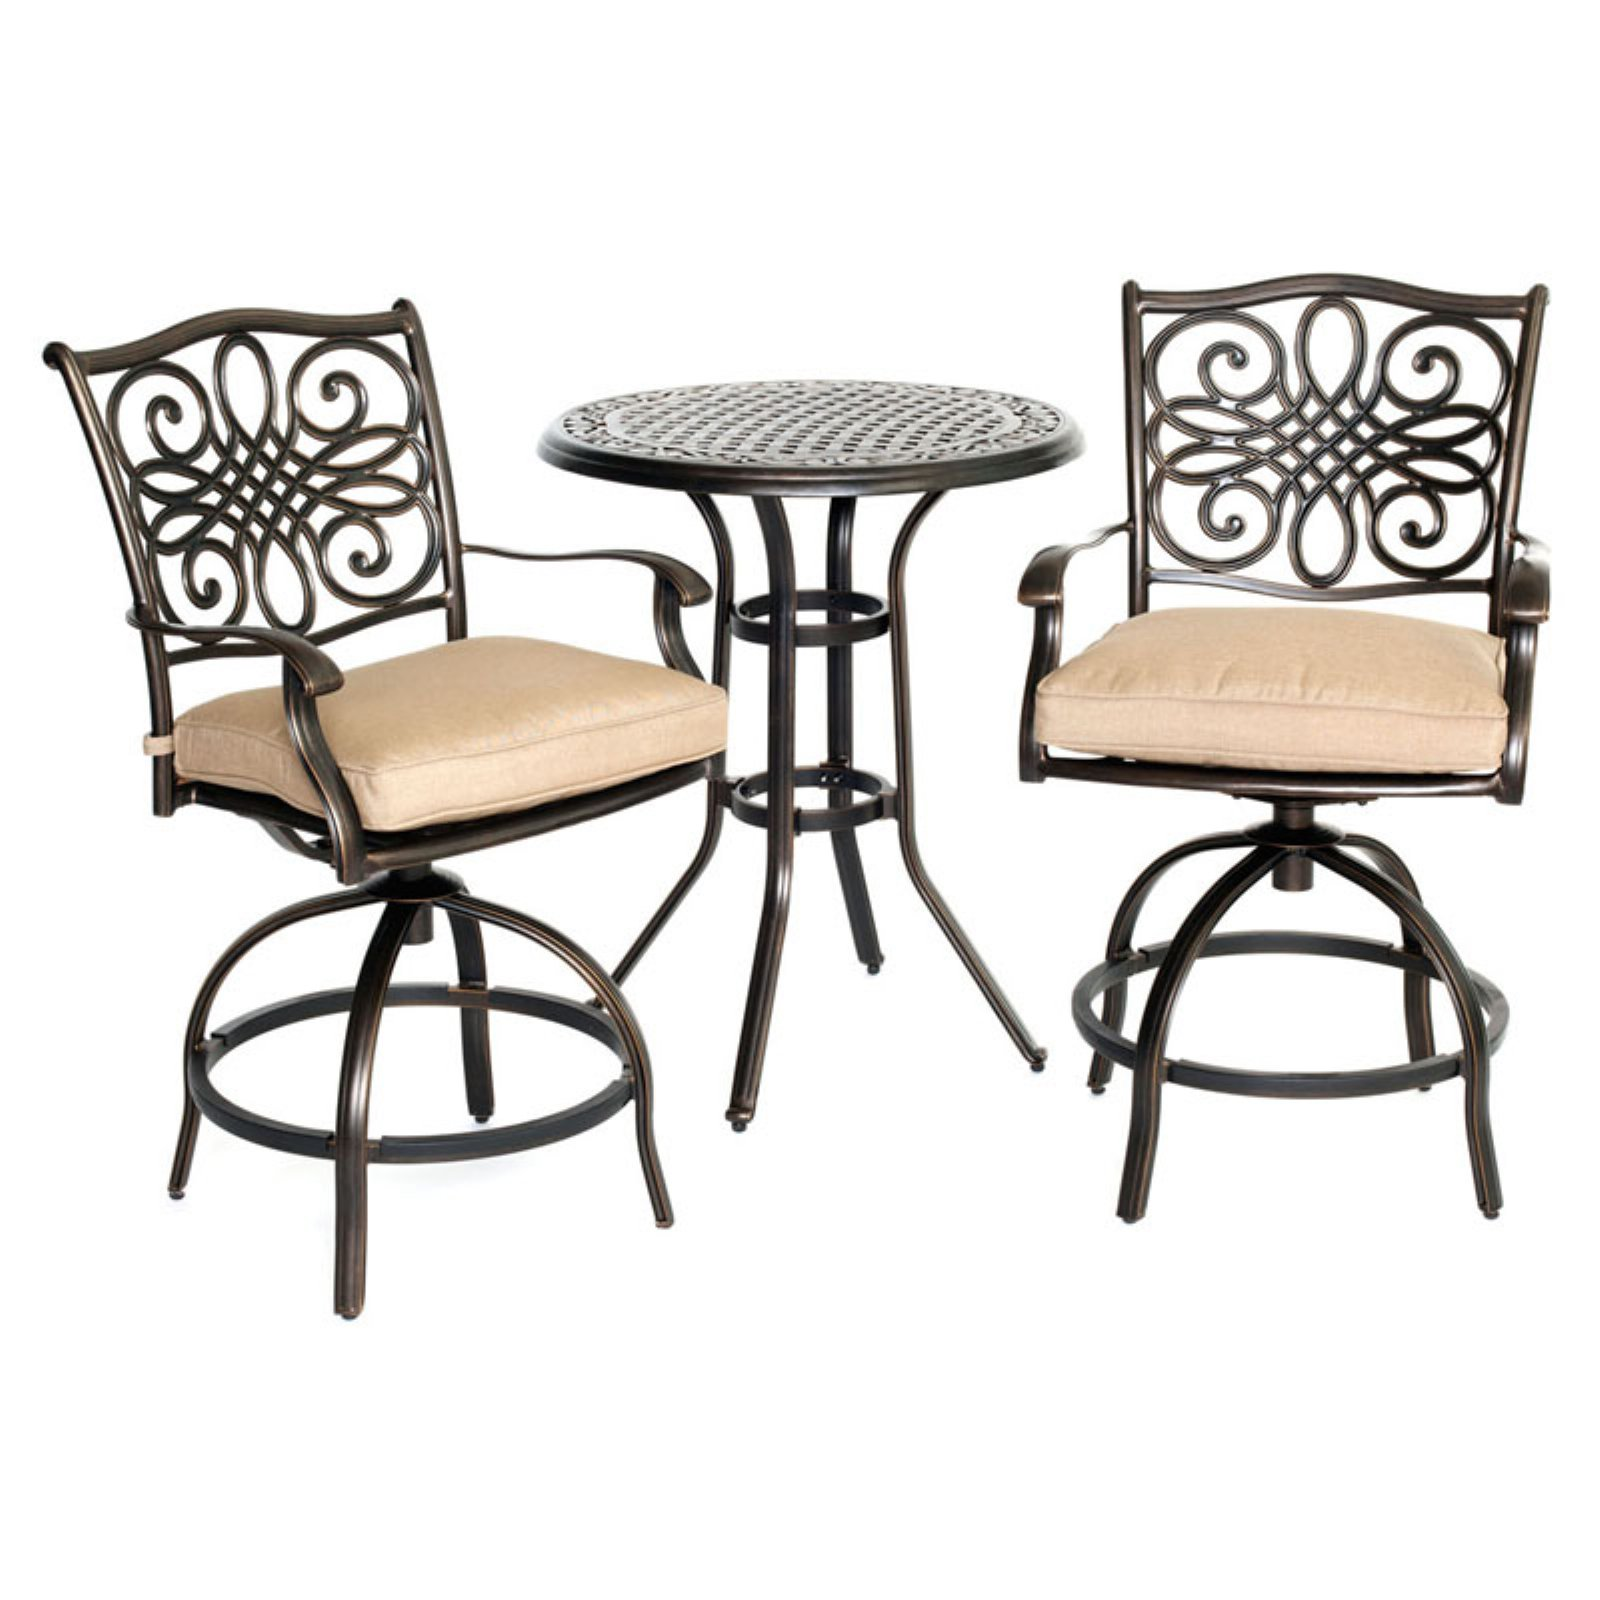 Bon Hanover Outdoor Traditions 3 Piece High Dining Bistro Set, Natural  Oat/Bronze